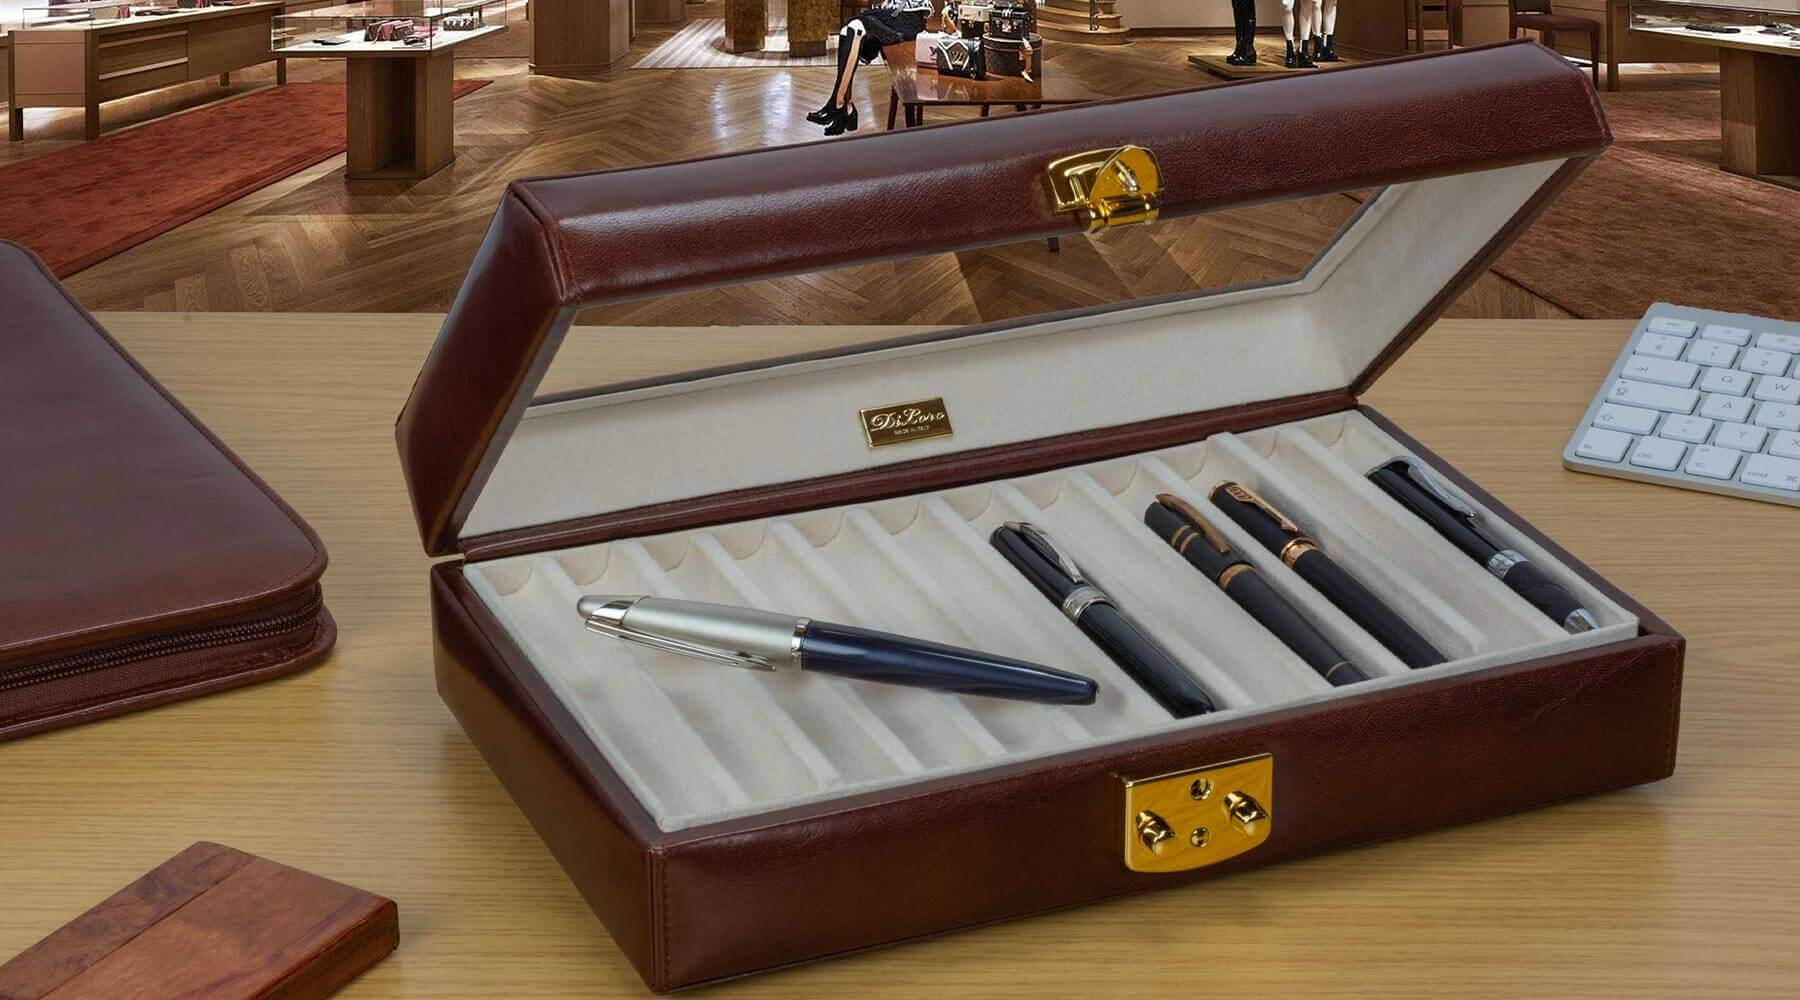 Italian Leather Display Pen Case Holders - Enjoy your beautiful pen collection with this beveled glass top Italian leather display case. DiLoro Switzerland